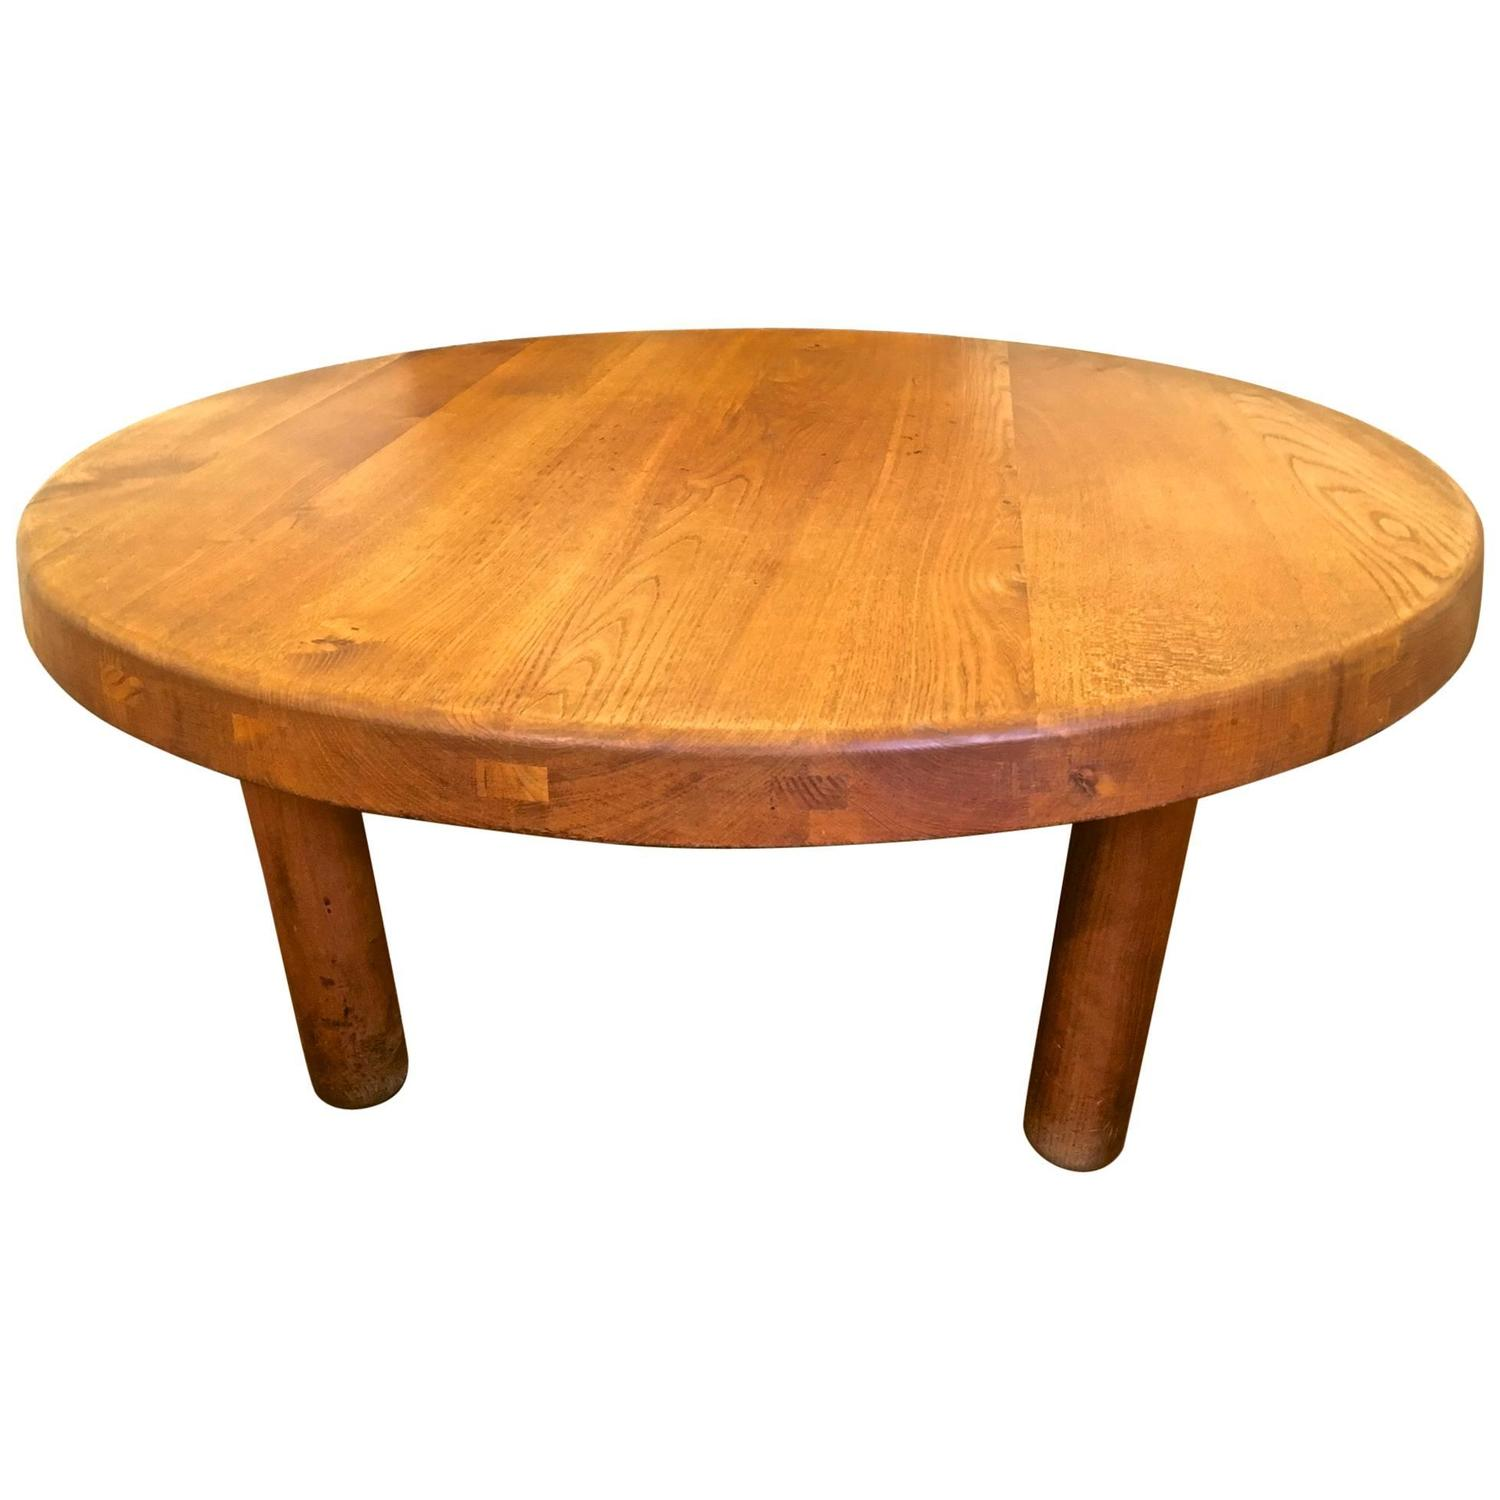 Charlotte Perriand Round Low Coffee Table For Sale At 1stdibs